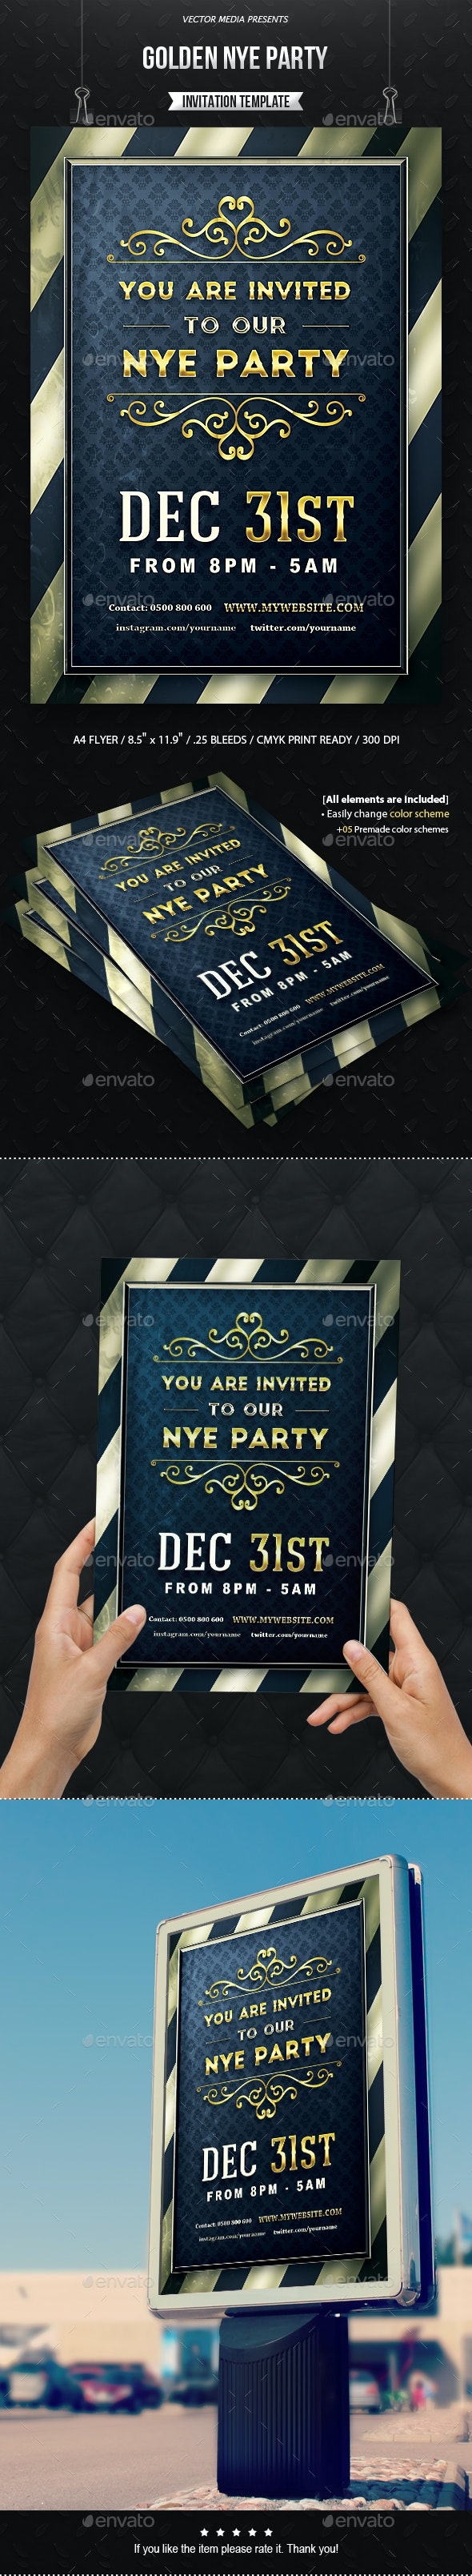 Golden NYE Party - Invitation - Invitations Cards & Invites